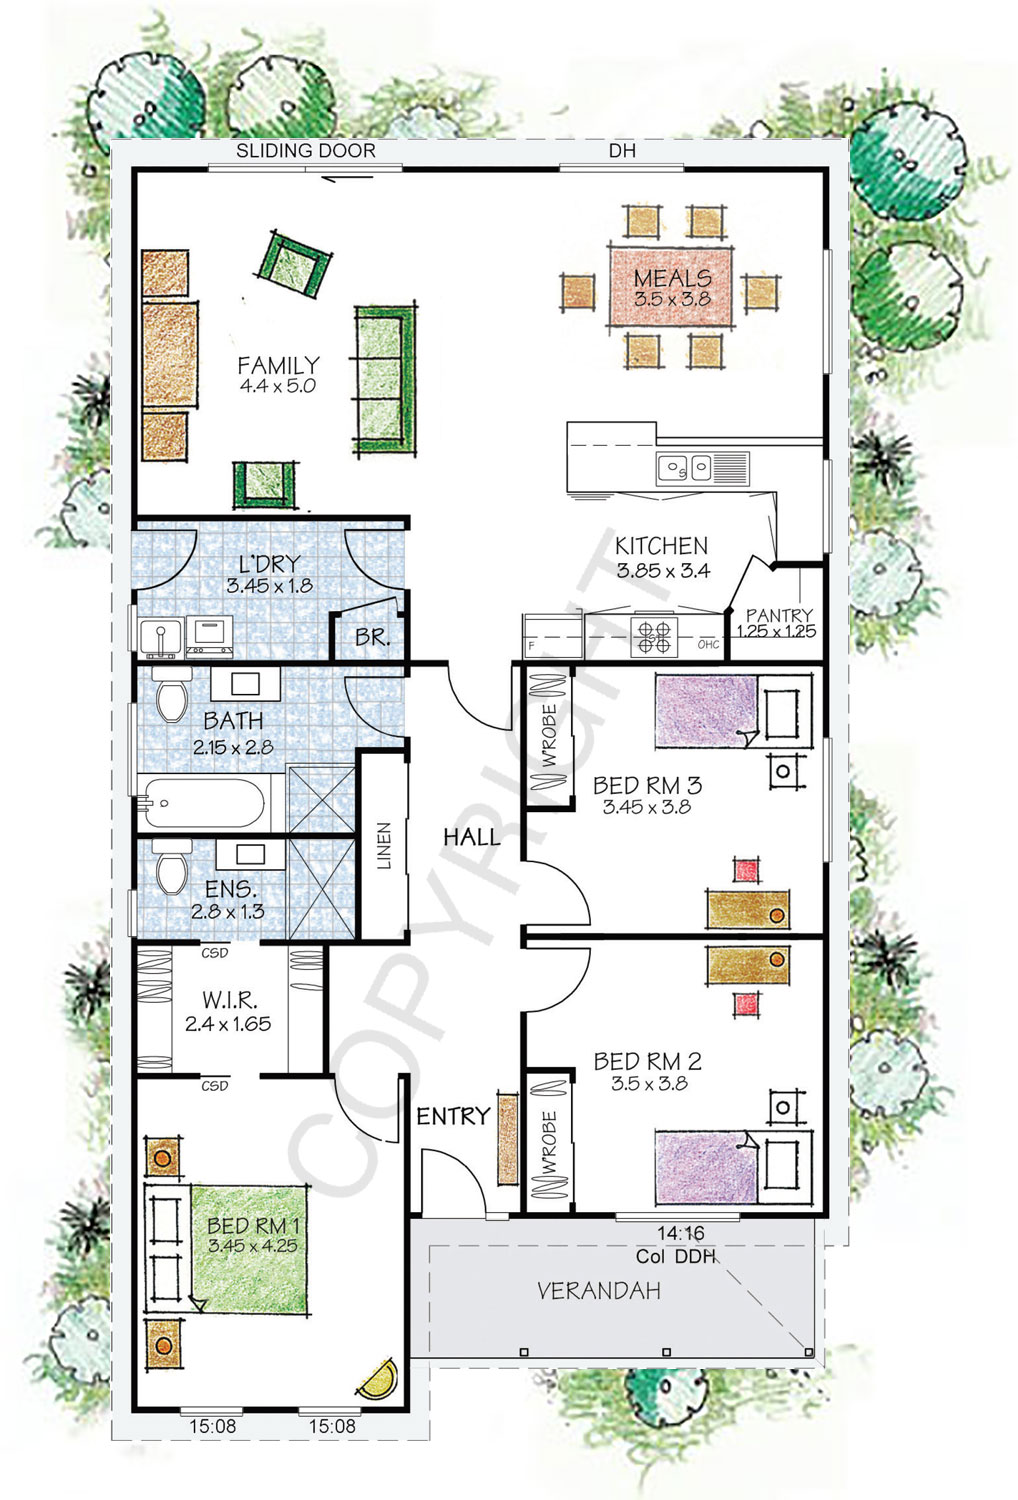 The fitzroy floor plan - Download a PDF here - Paal Kit Homes offer easy to build steel frame kit homes for the owner builder and have display / sale centres in Sydney NSW, Melbourne VIC, Brisbane QLD, Townsville NTH QLD, Perth WA.